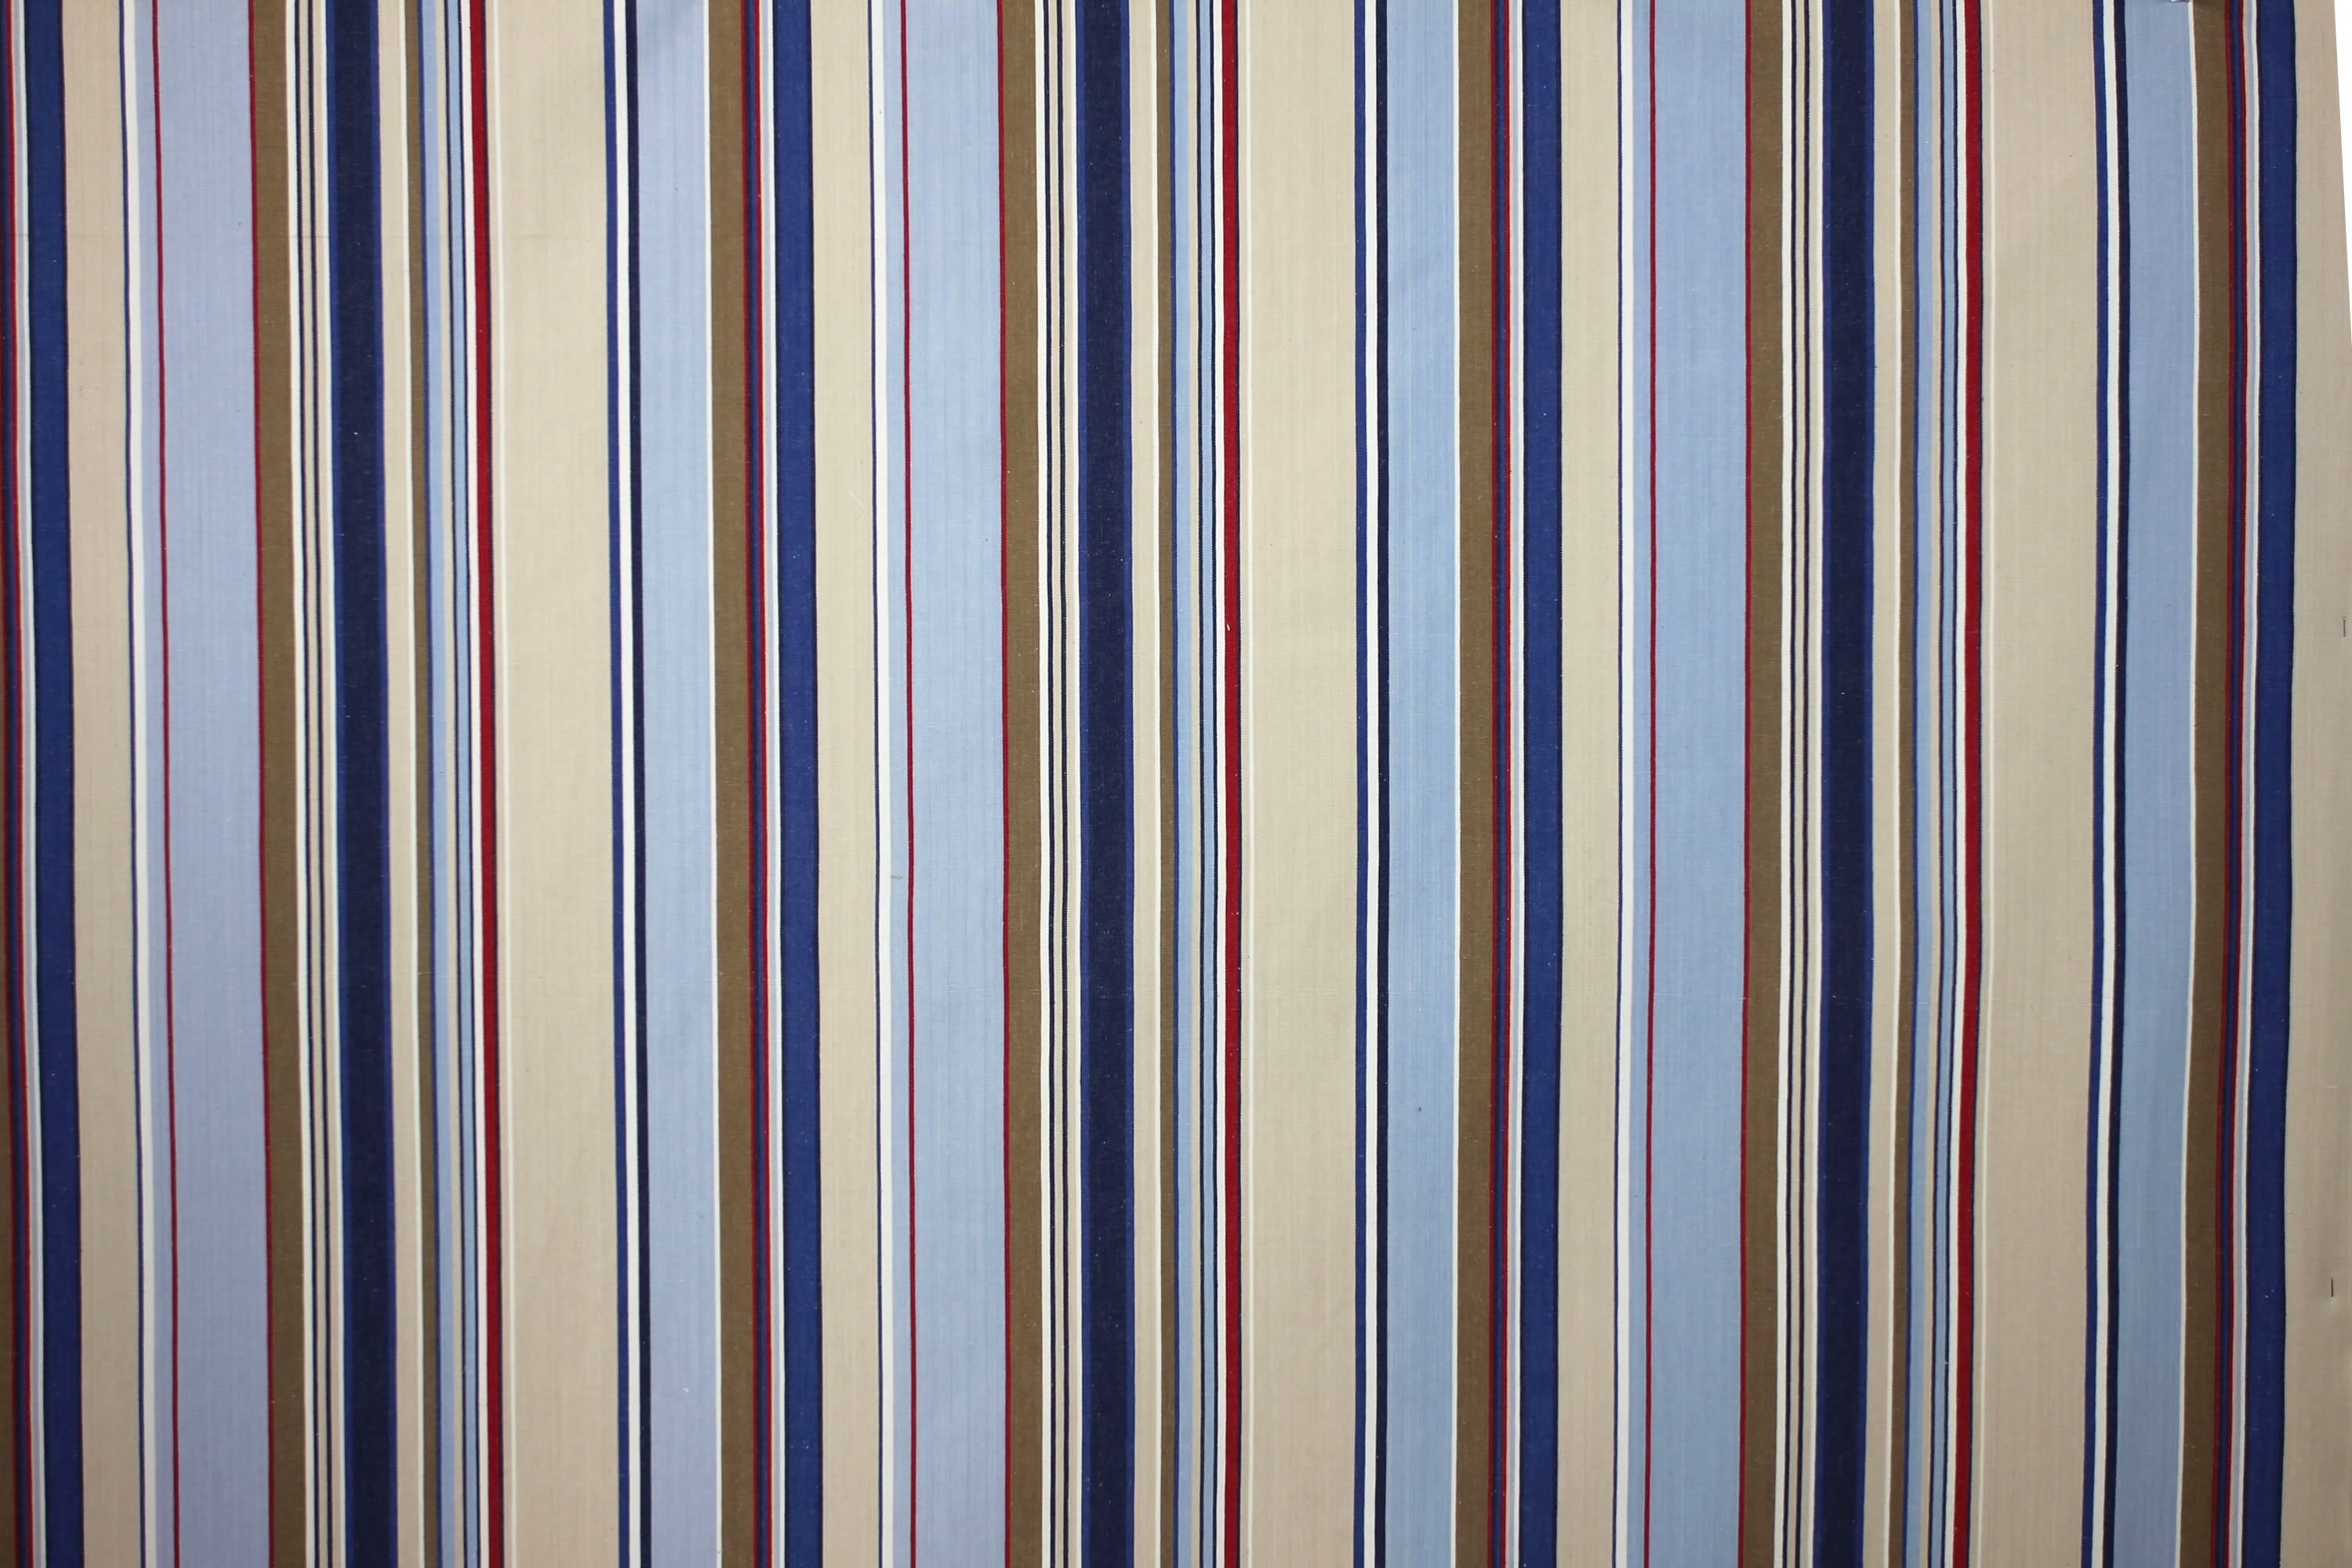 Wipe Clean Fabrics Stripes | Water Repellent Coated Fabrics pale blue, light grey, royal blue